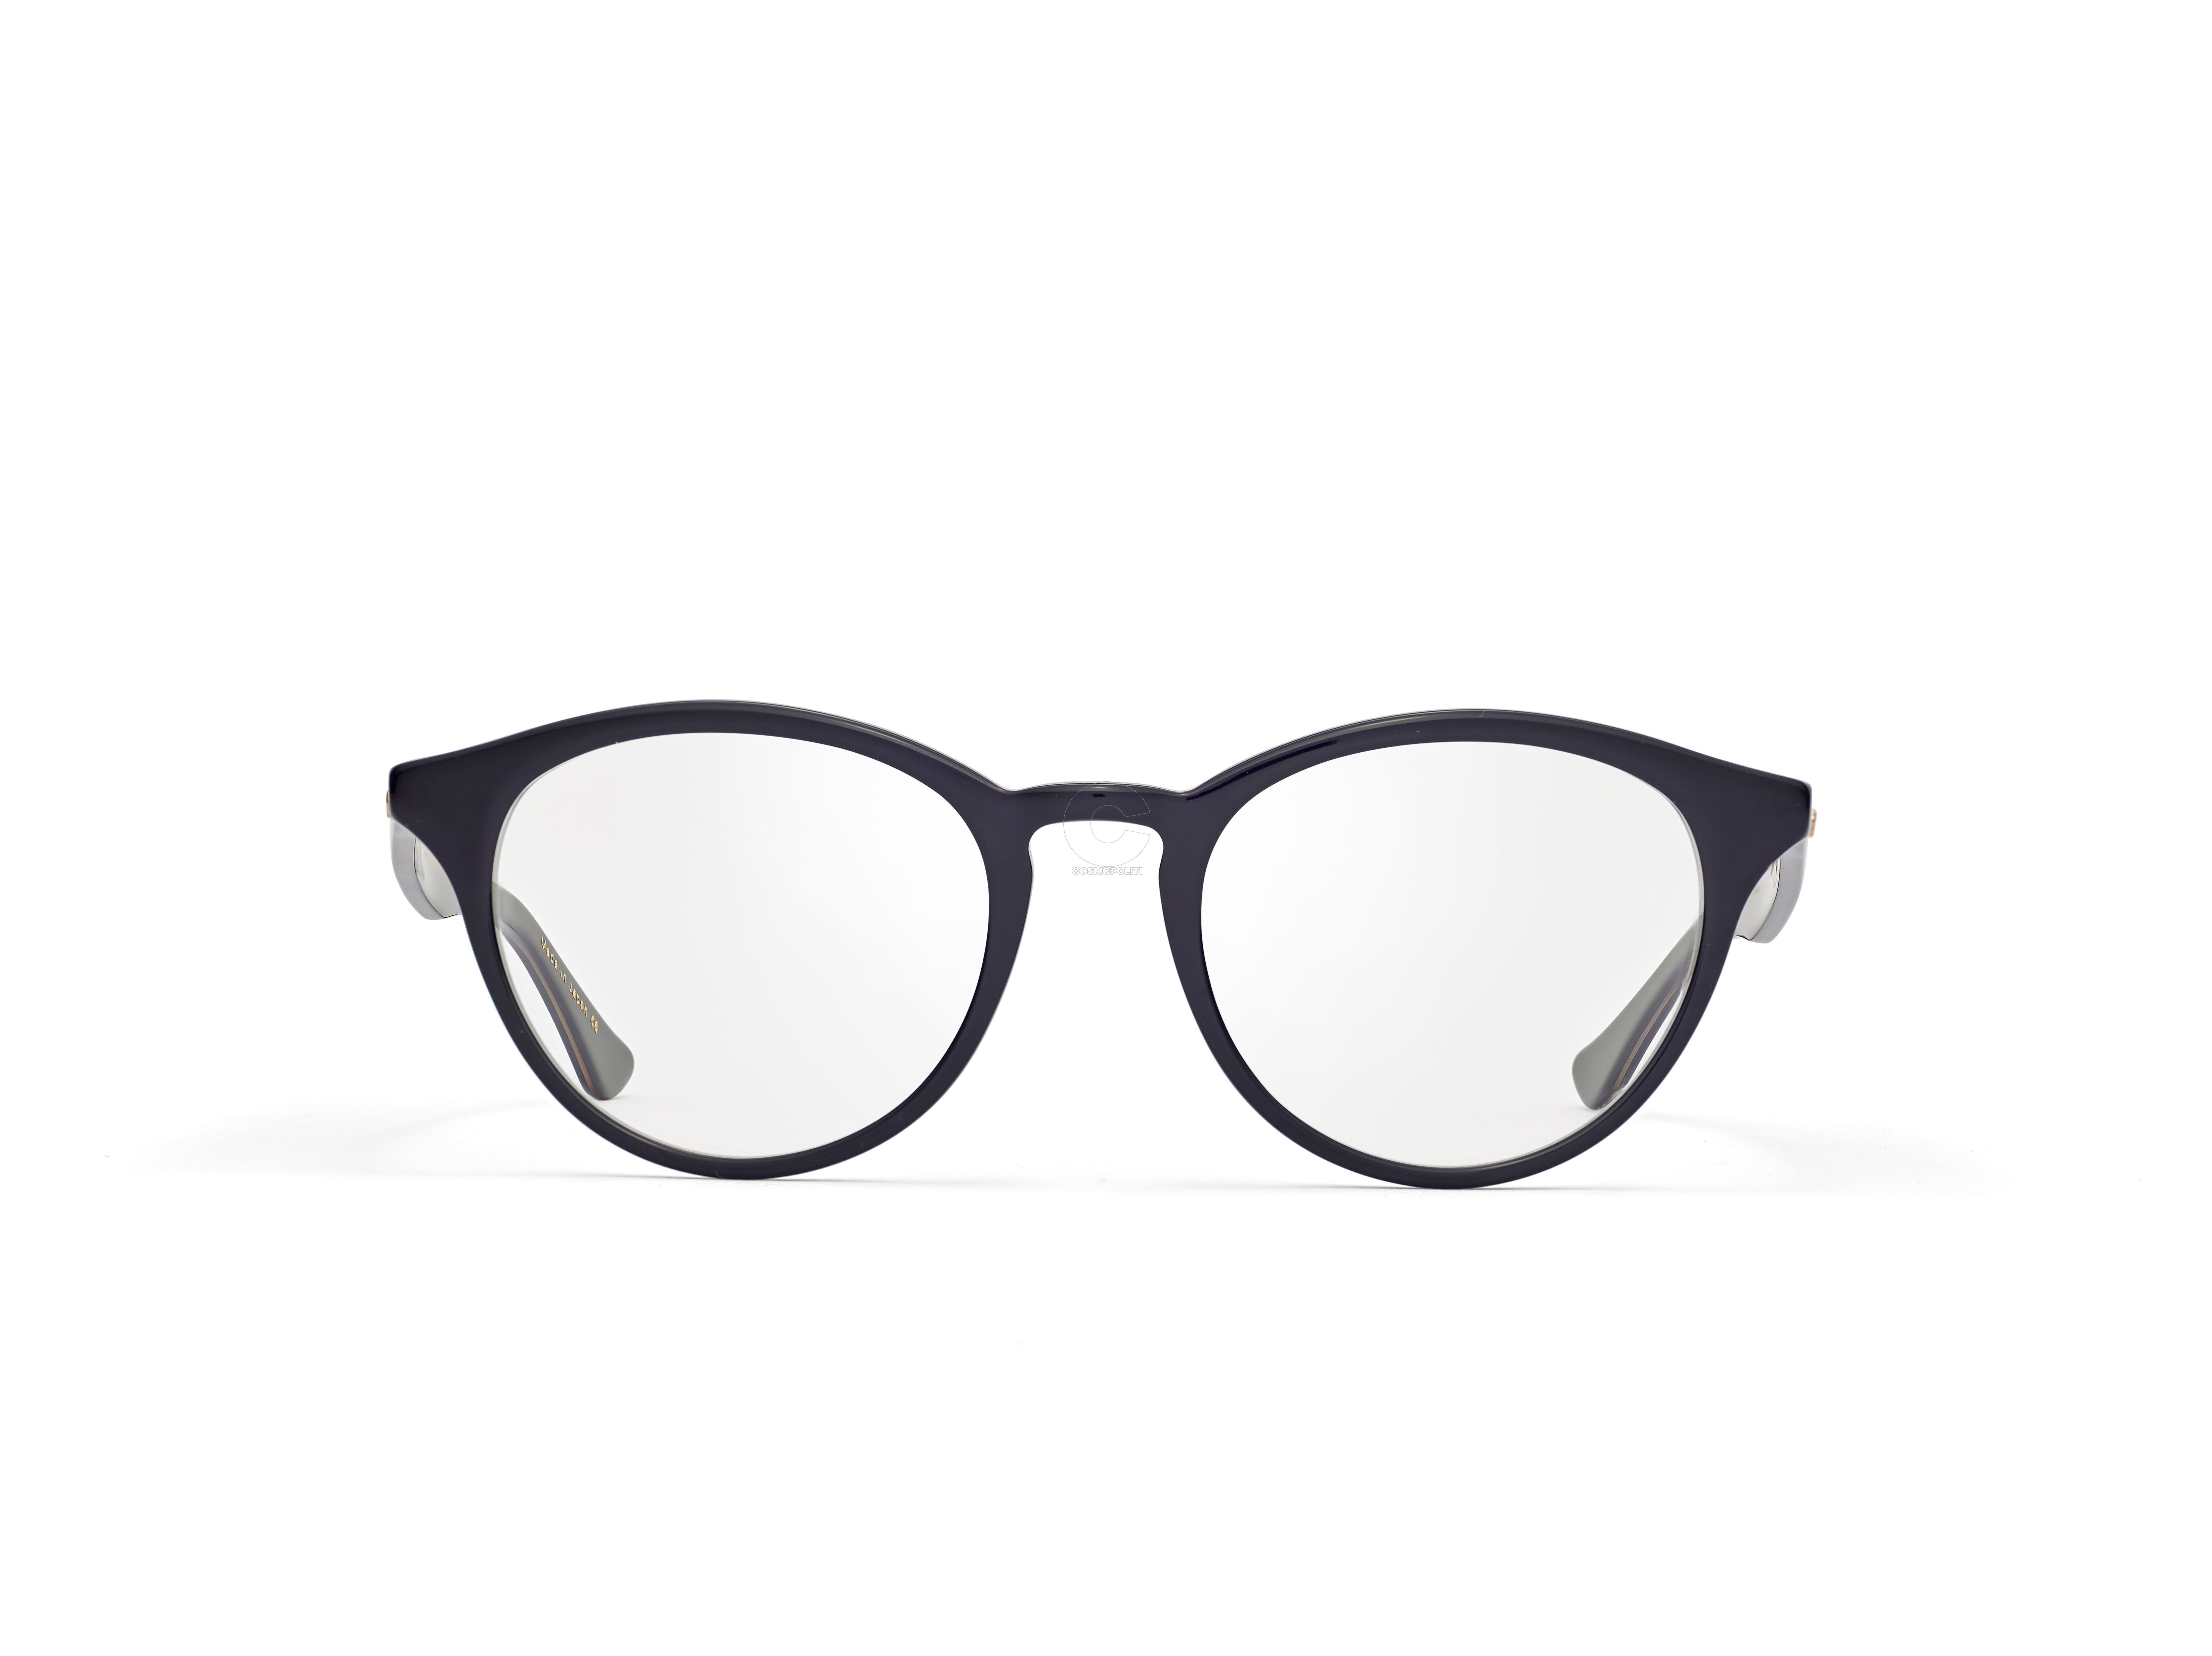 TOPOS_DTX512-48-01_front